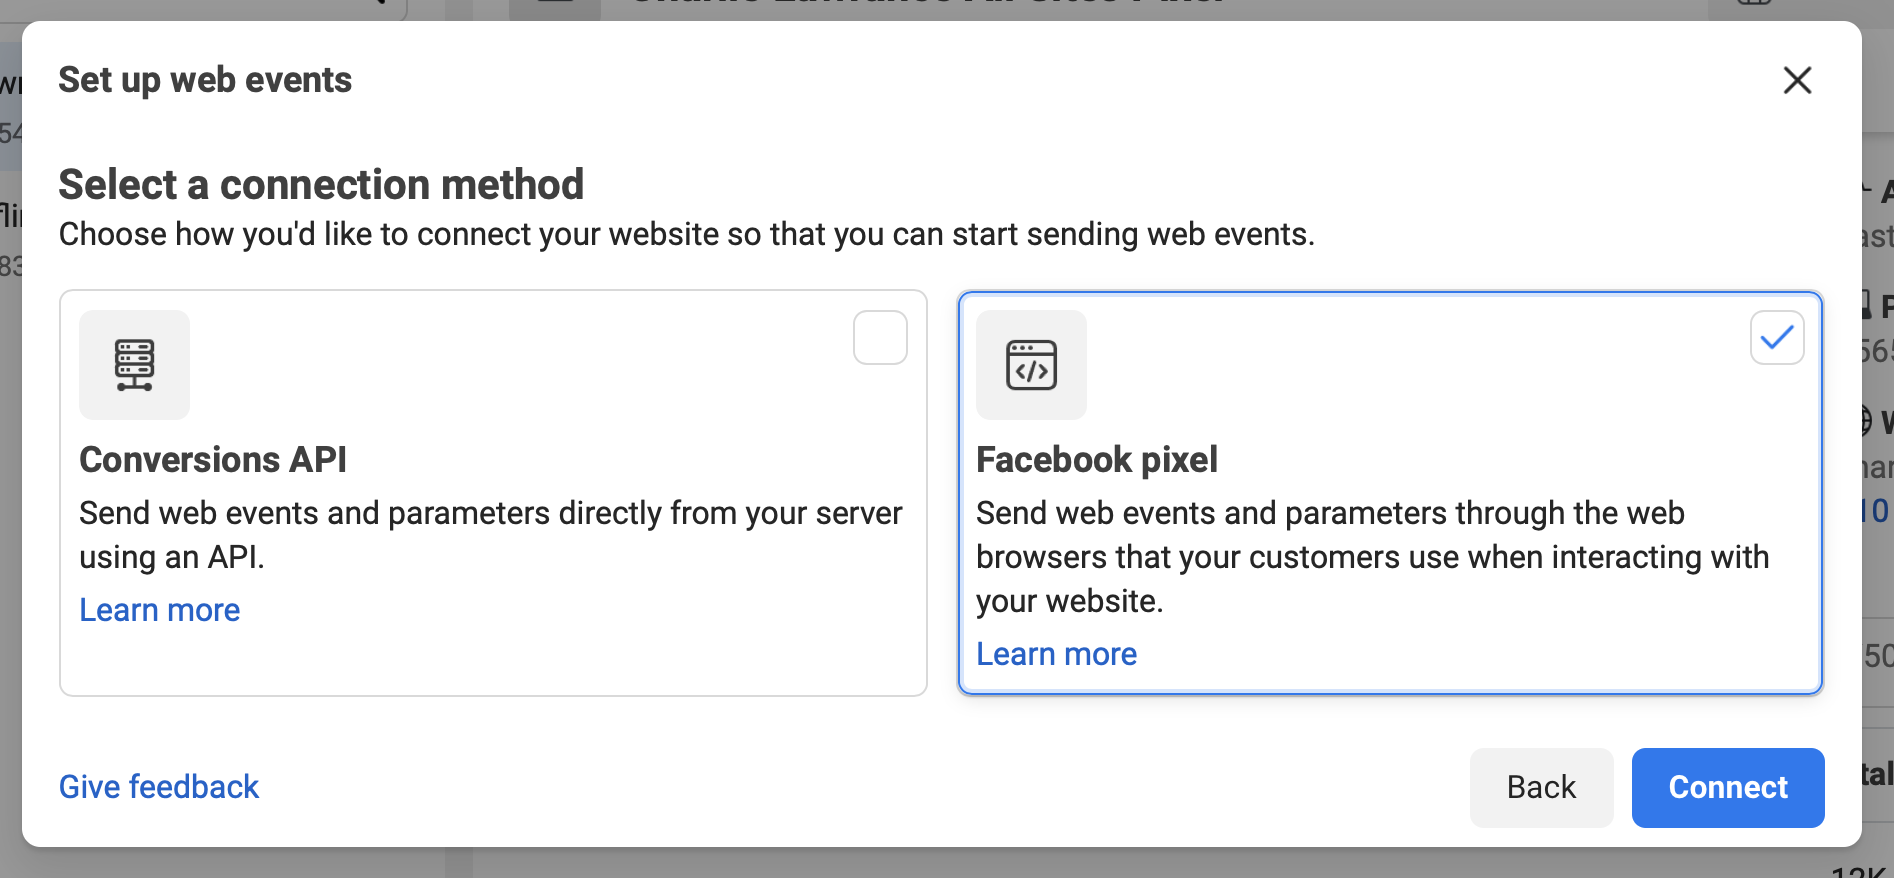 Facebook pixel connection method